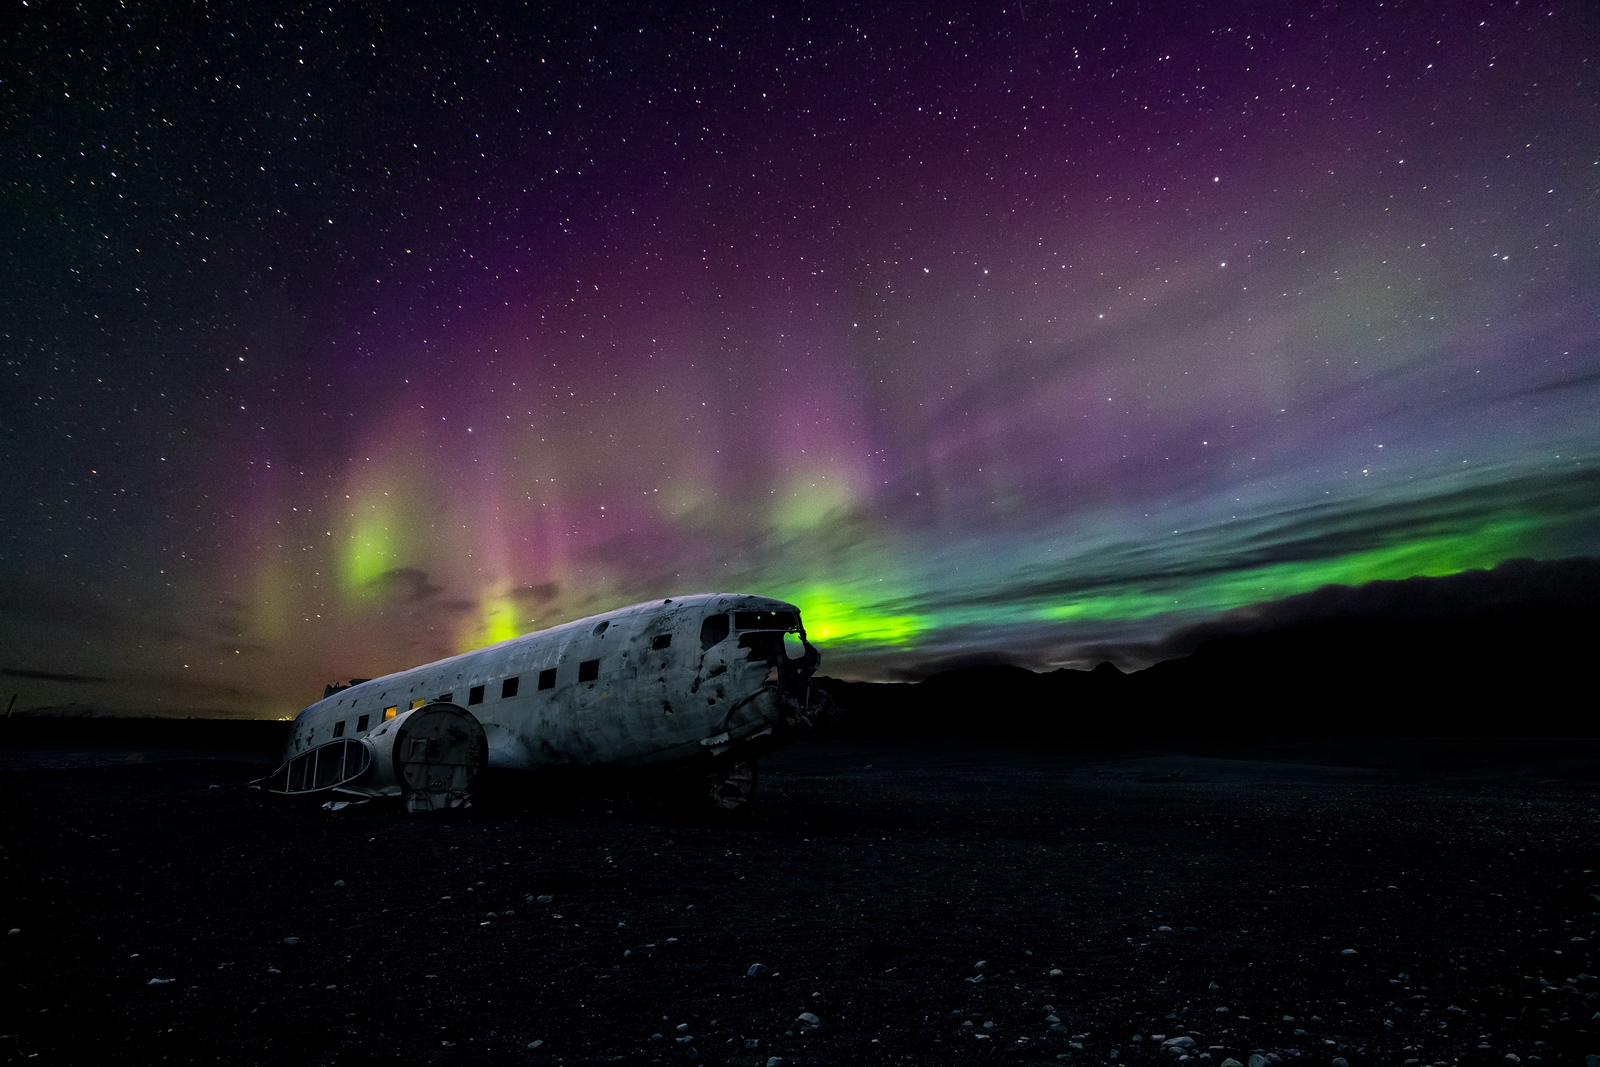 The 10 Best Places to See the Northern Lights - Iceland